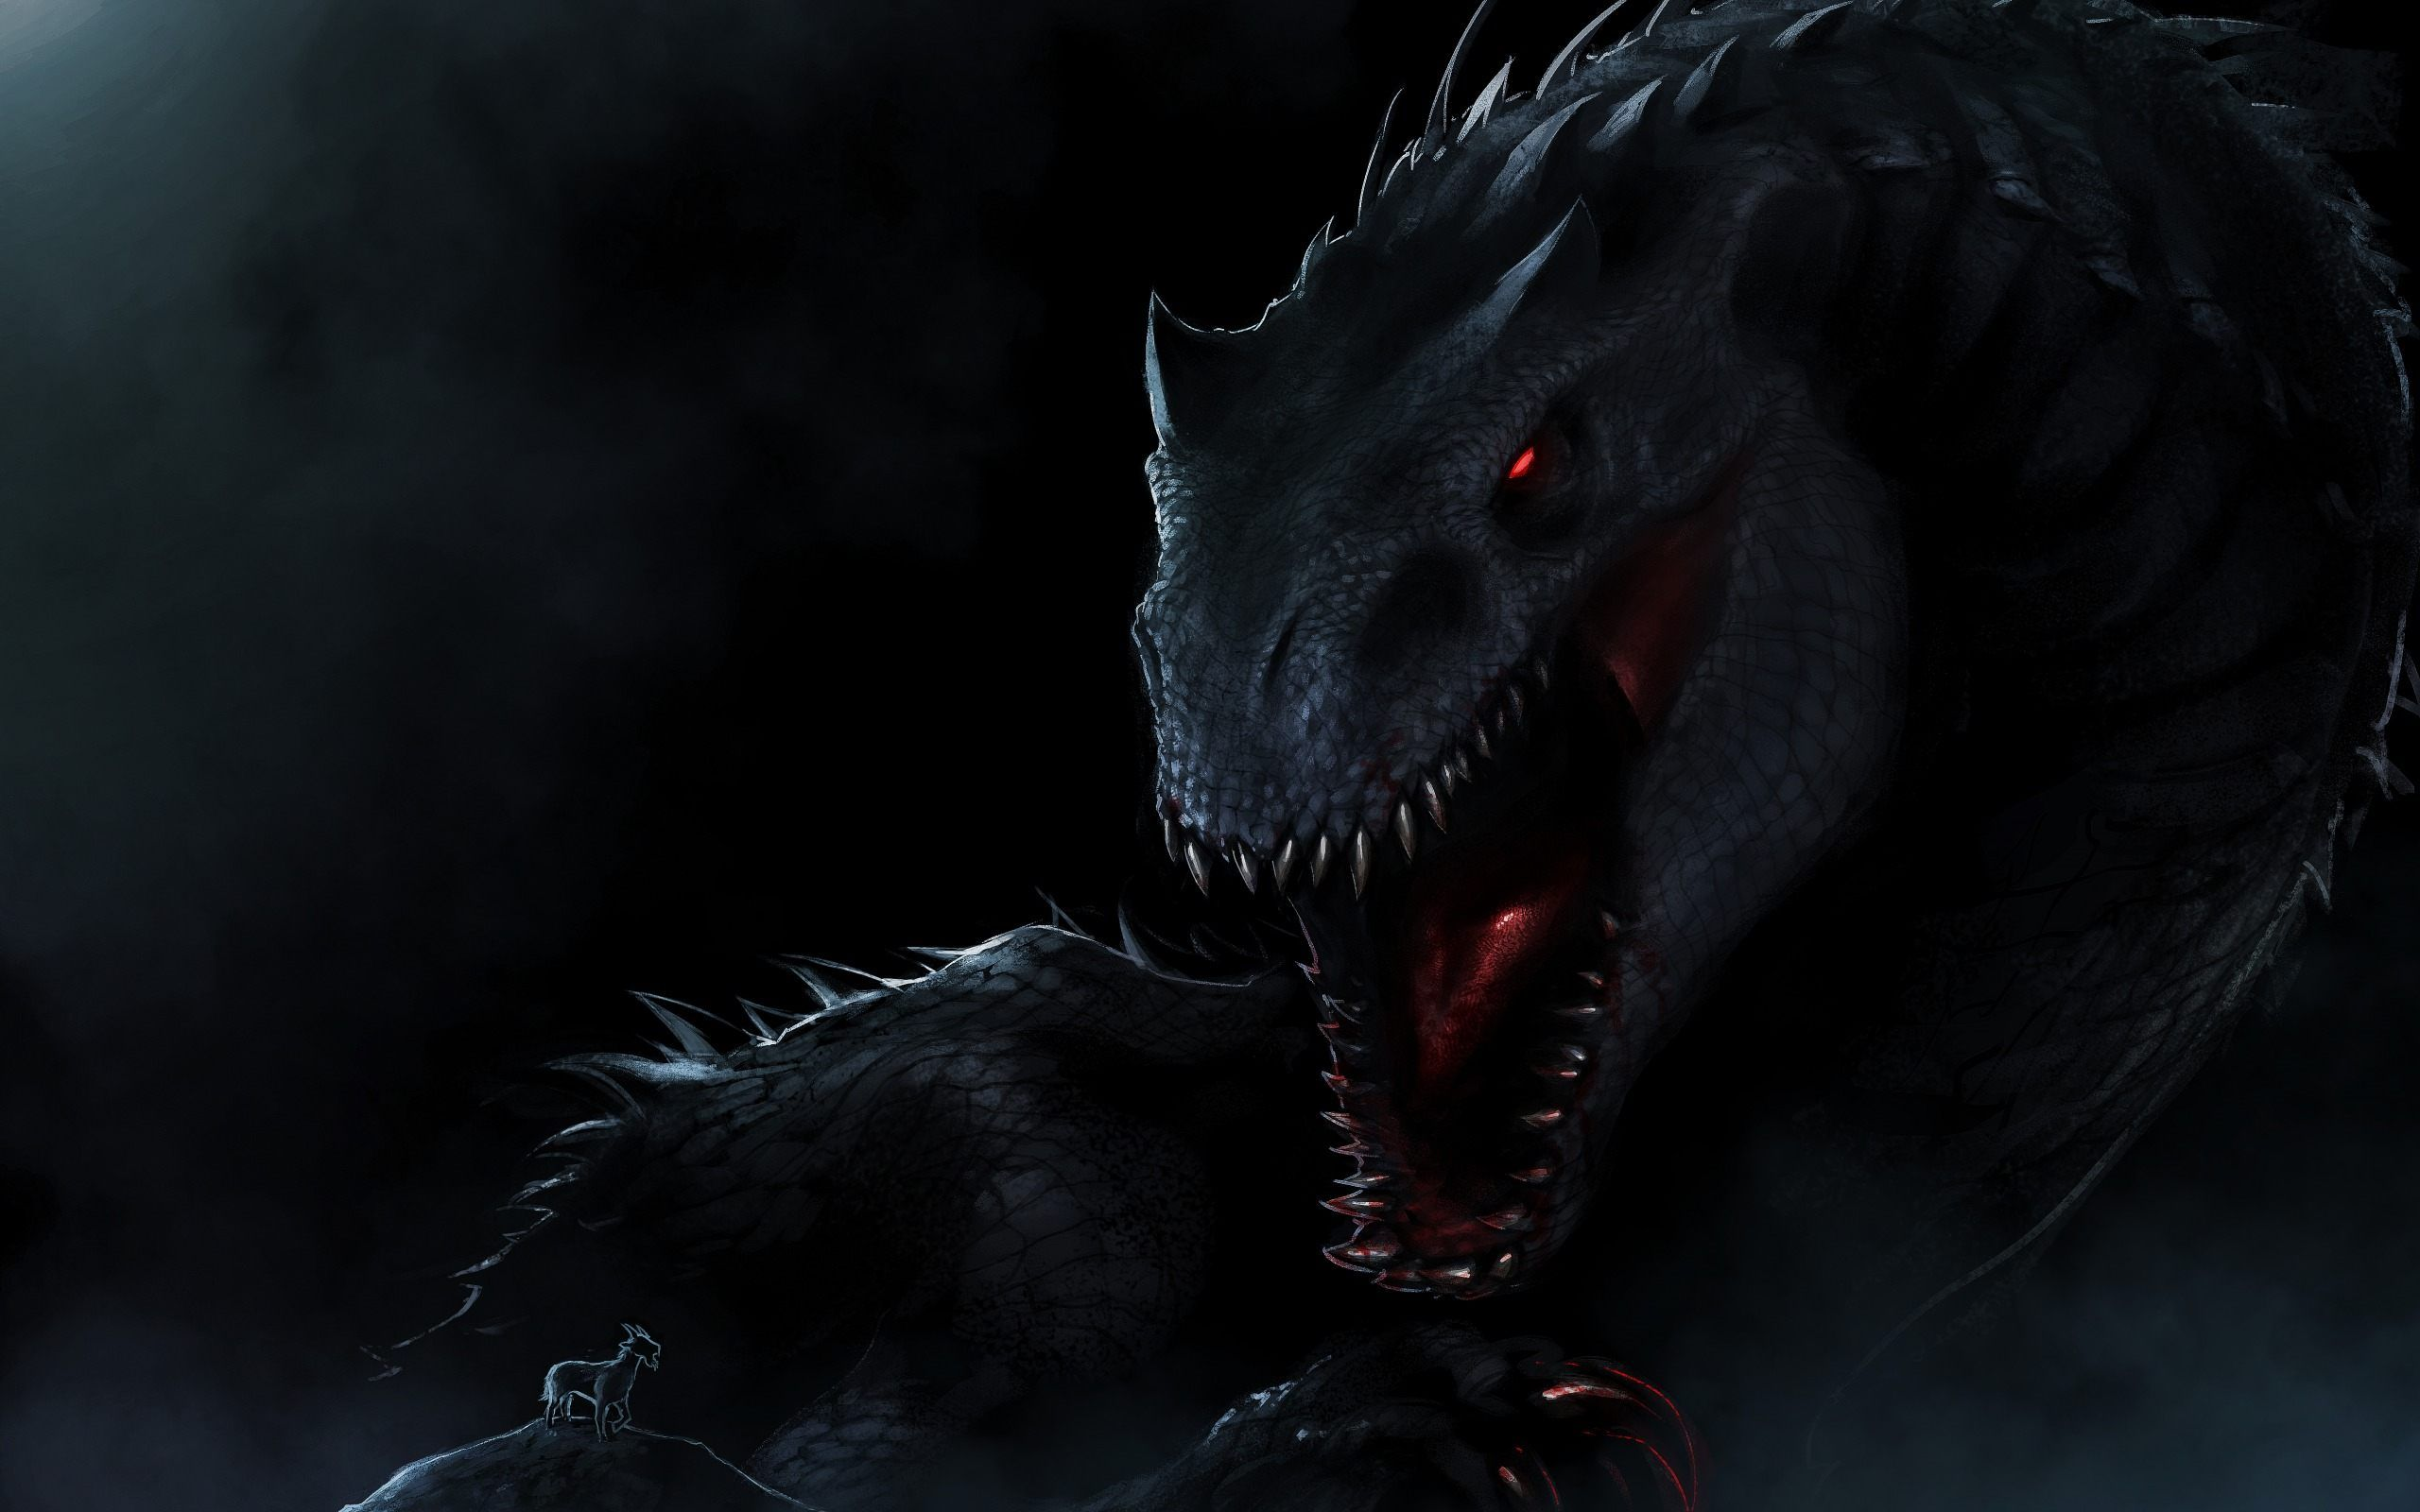 Jurassic world indominus rex fan art wallpaper hd download - Fan wallpaper download ...